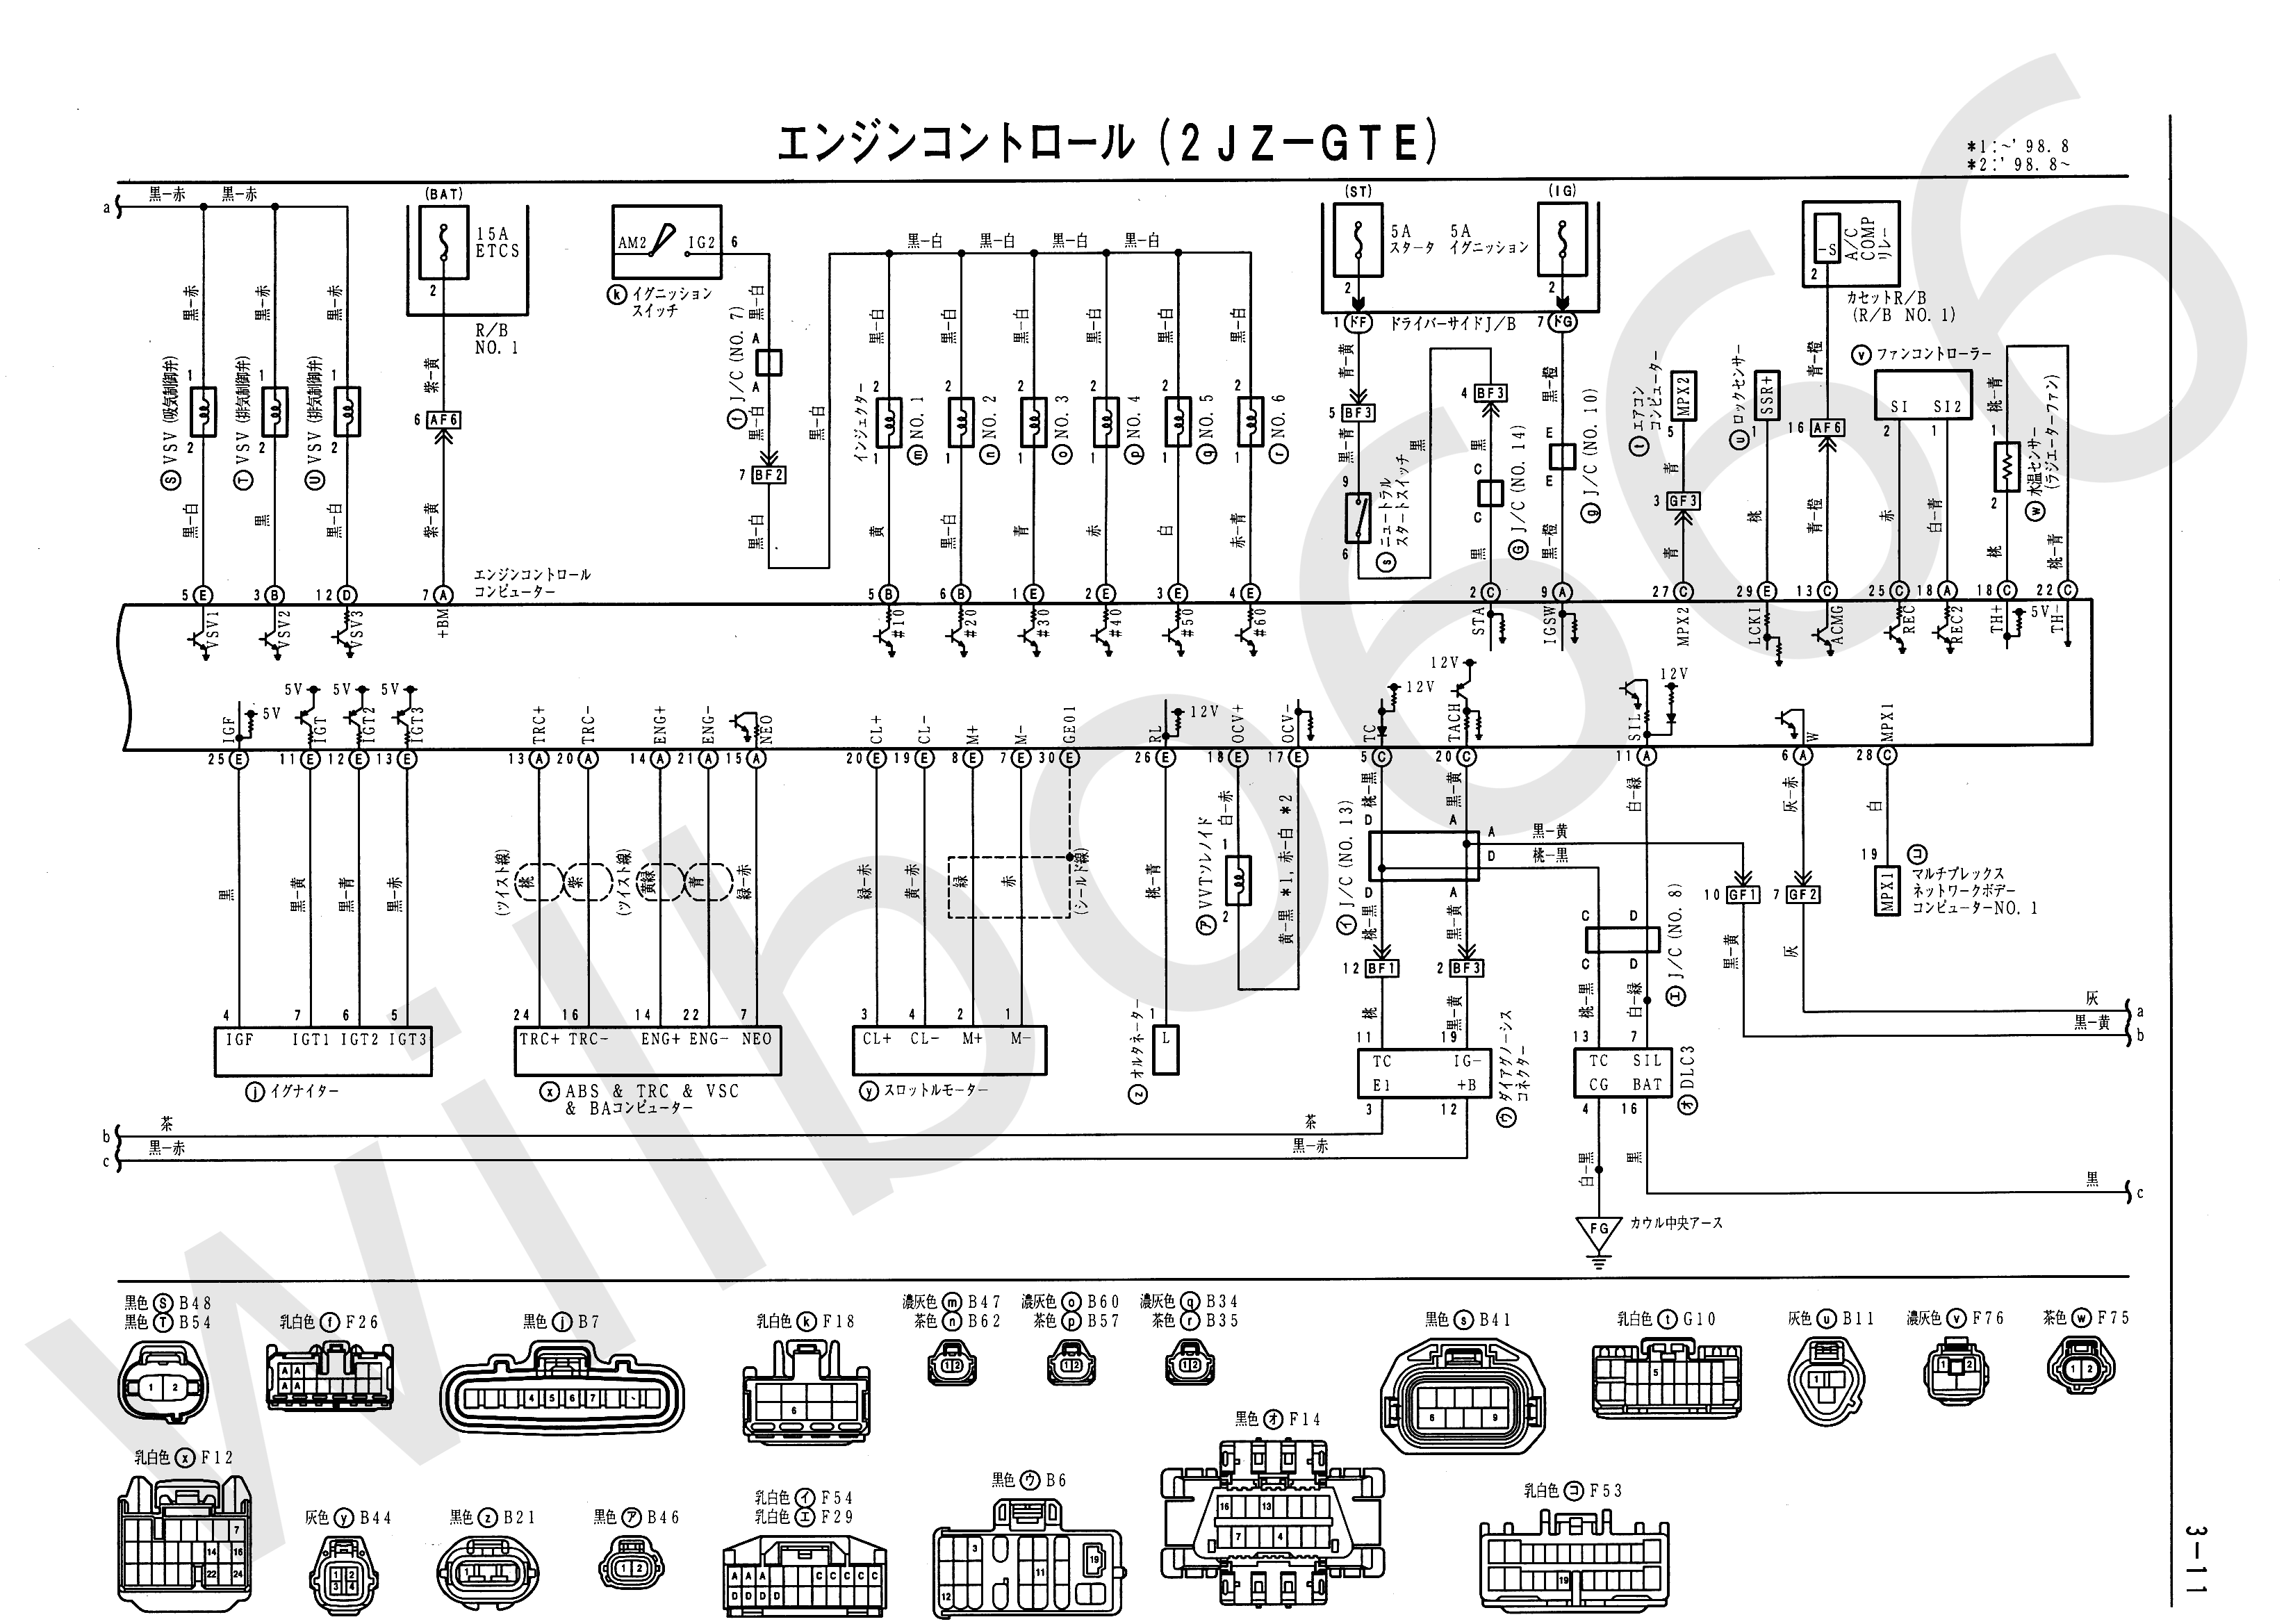 JZS161 Electrical Wiring Diagram 6748505 3 11 1jz wiring diagram 1jz gte ecu pinout \u2022 wiring diagrams j squared co 1jz vvti wiring harness at soozxer.org